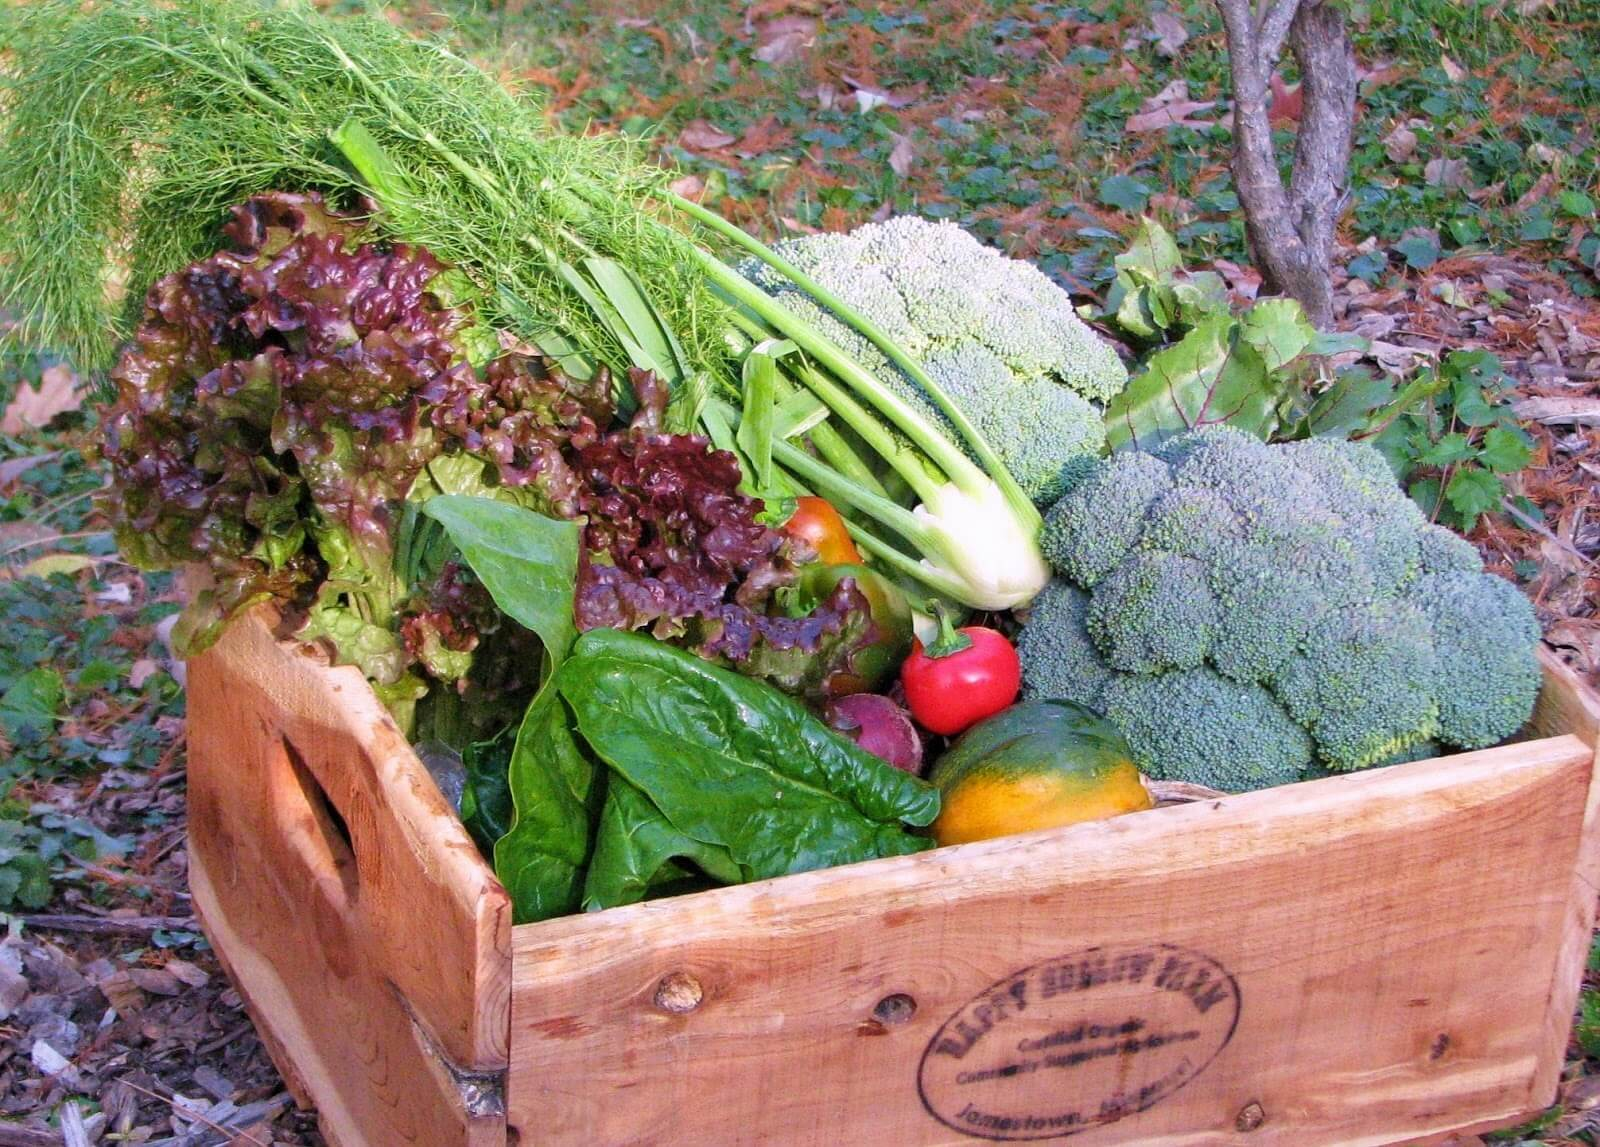 wooden box of fresh picked produce